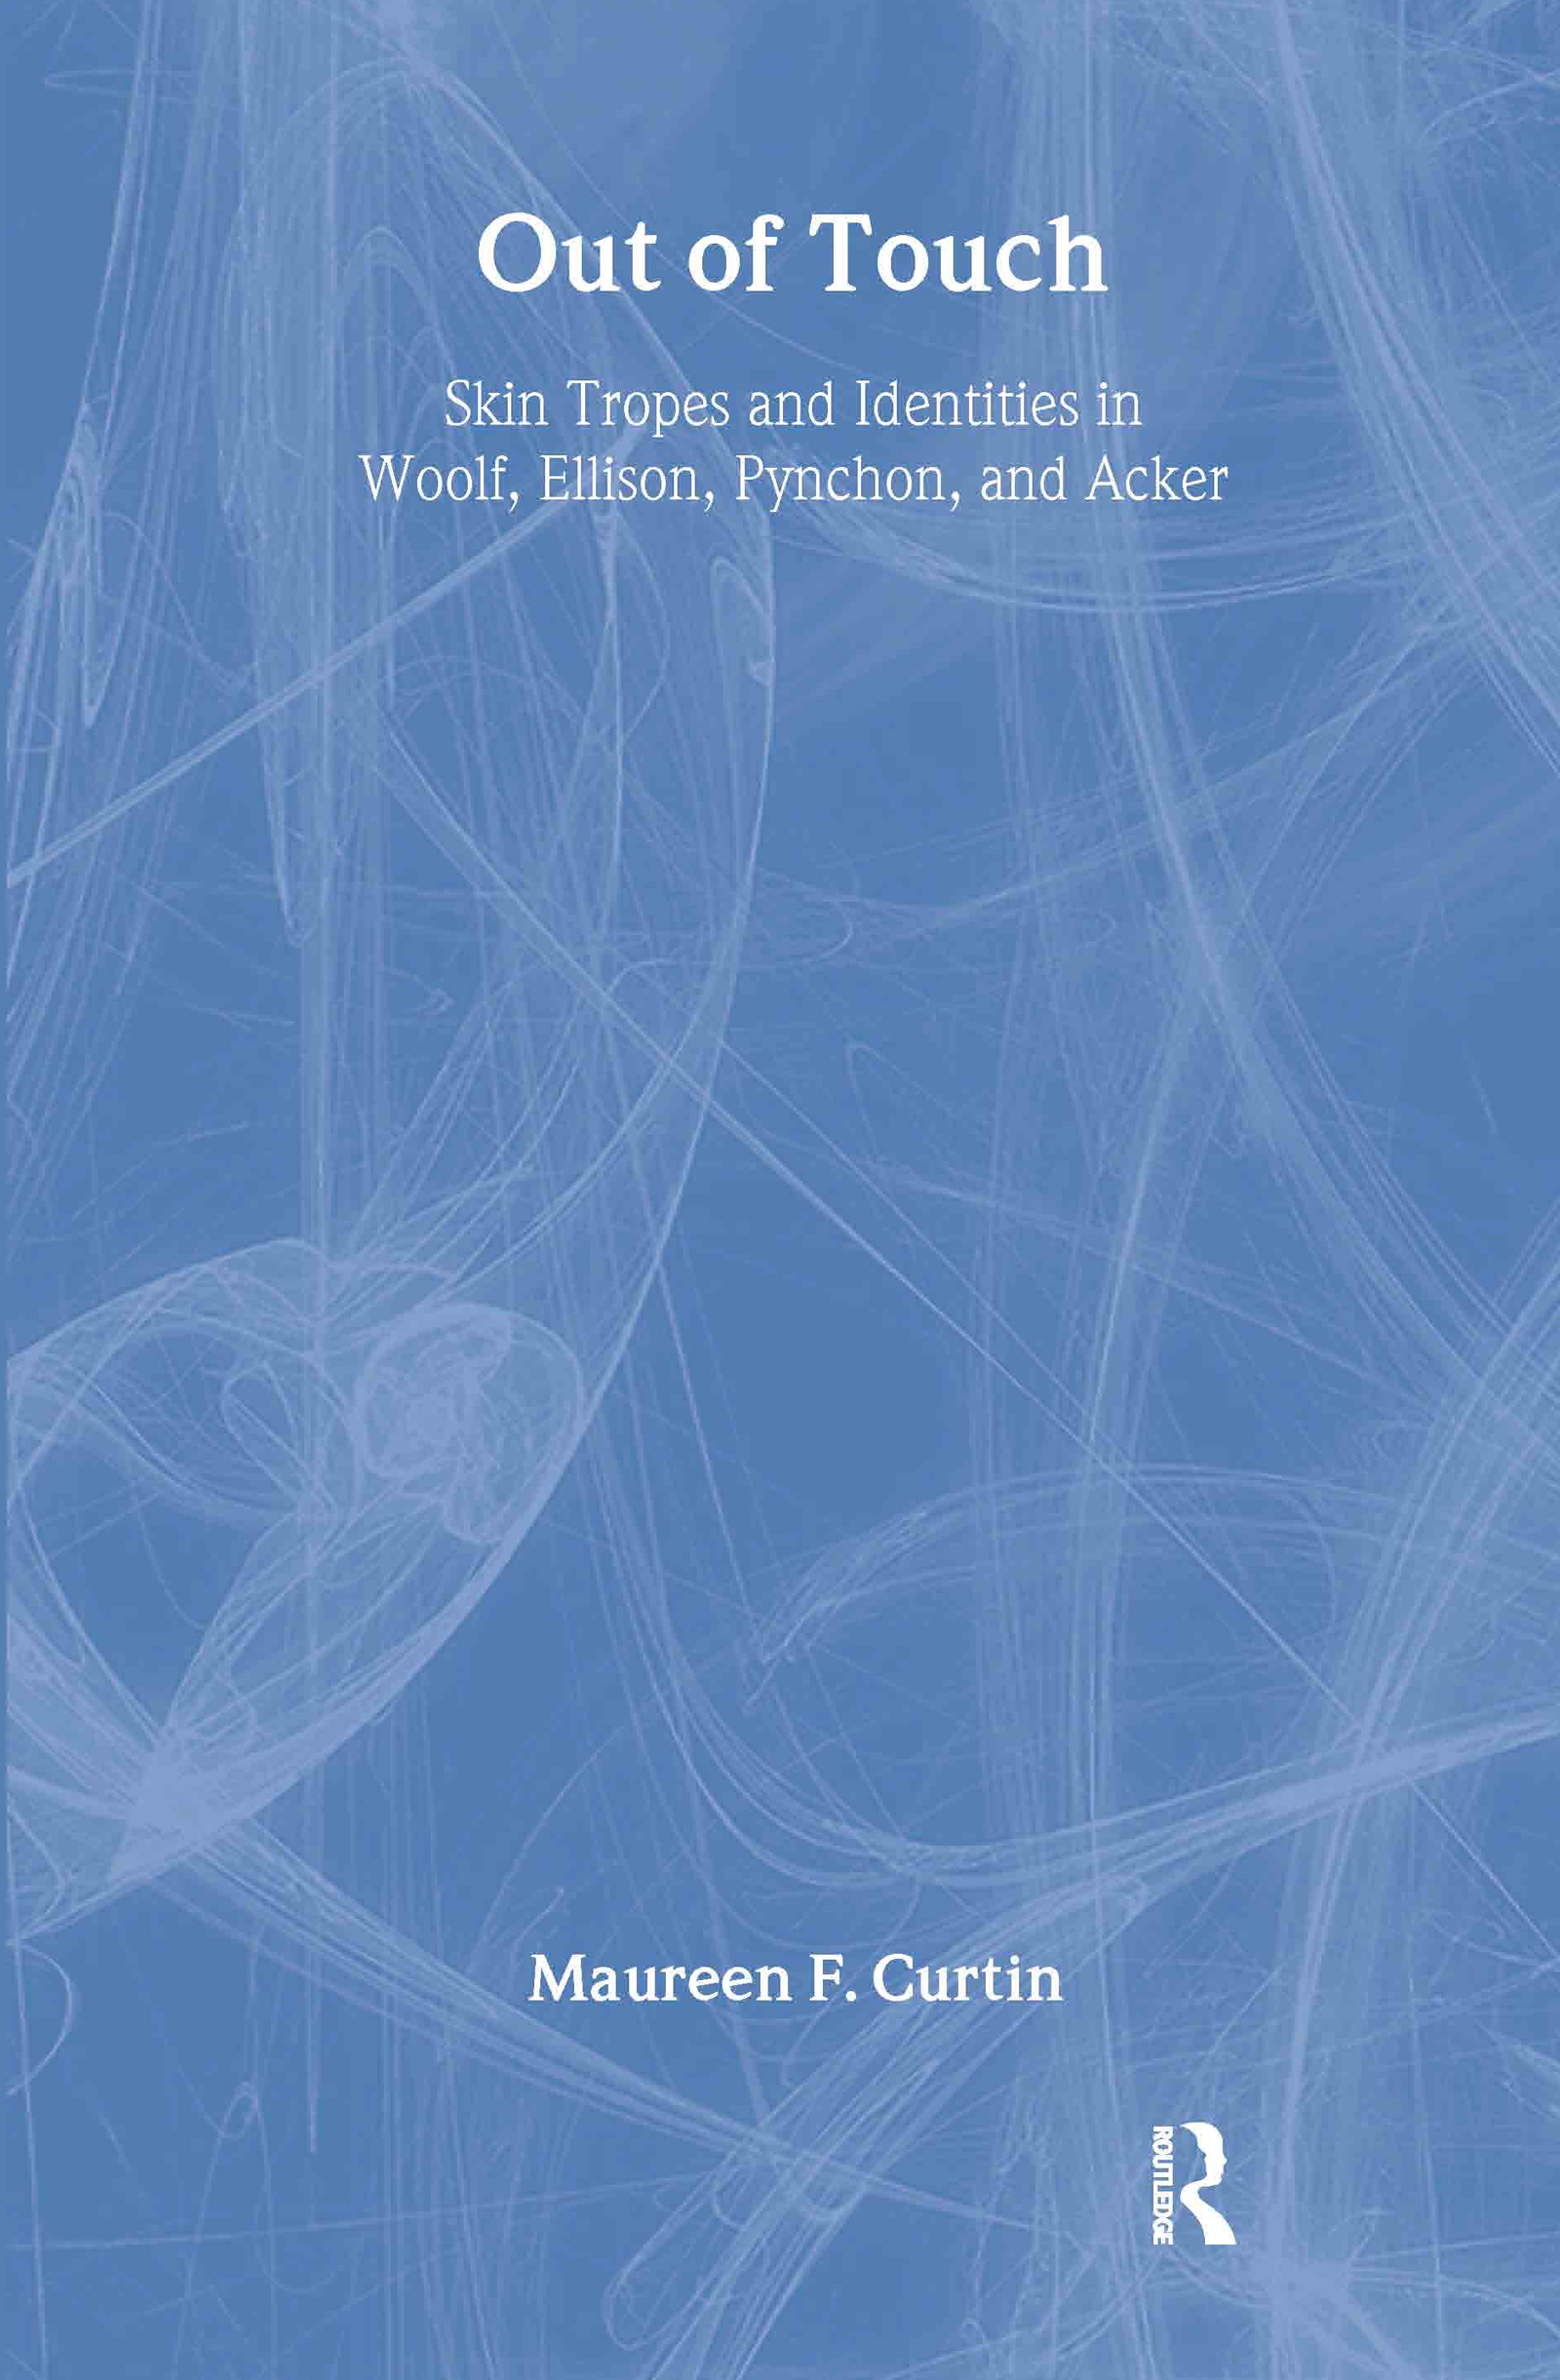 Out of Touch: Skin Tropes and Identities in Woolf, Ellison, Pynchon, and Acker, 1st Edition (Hardback) book cover